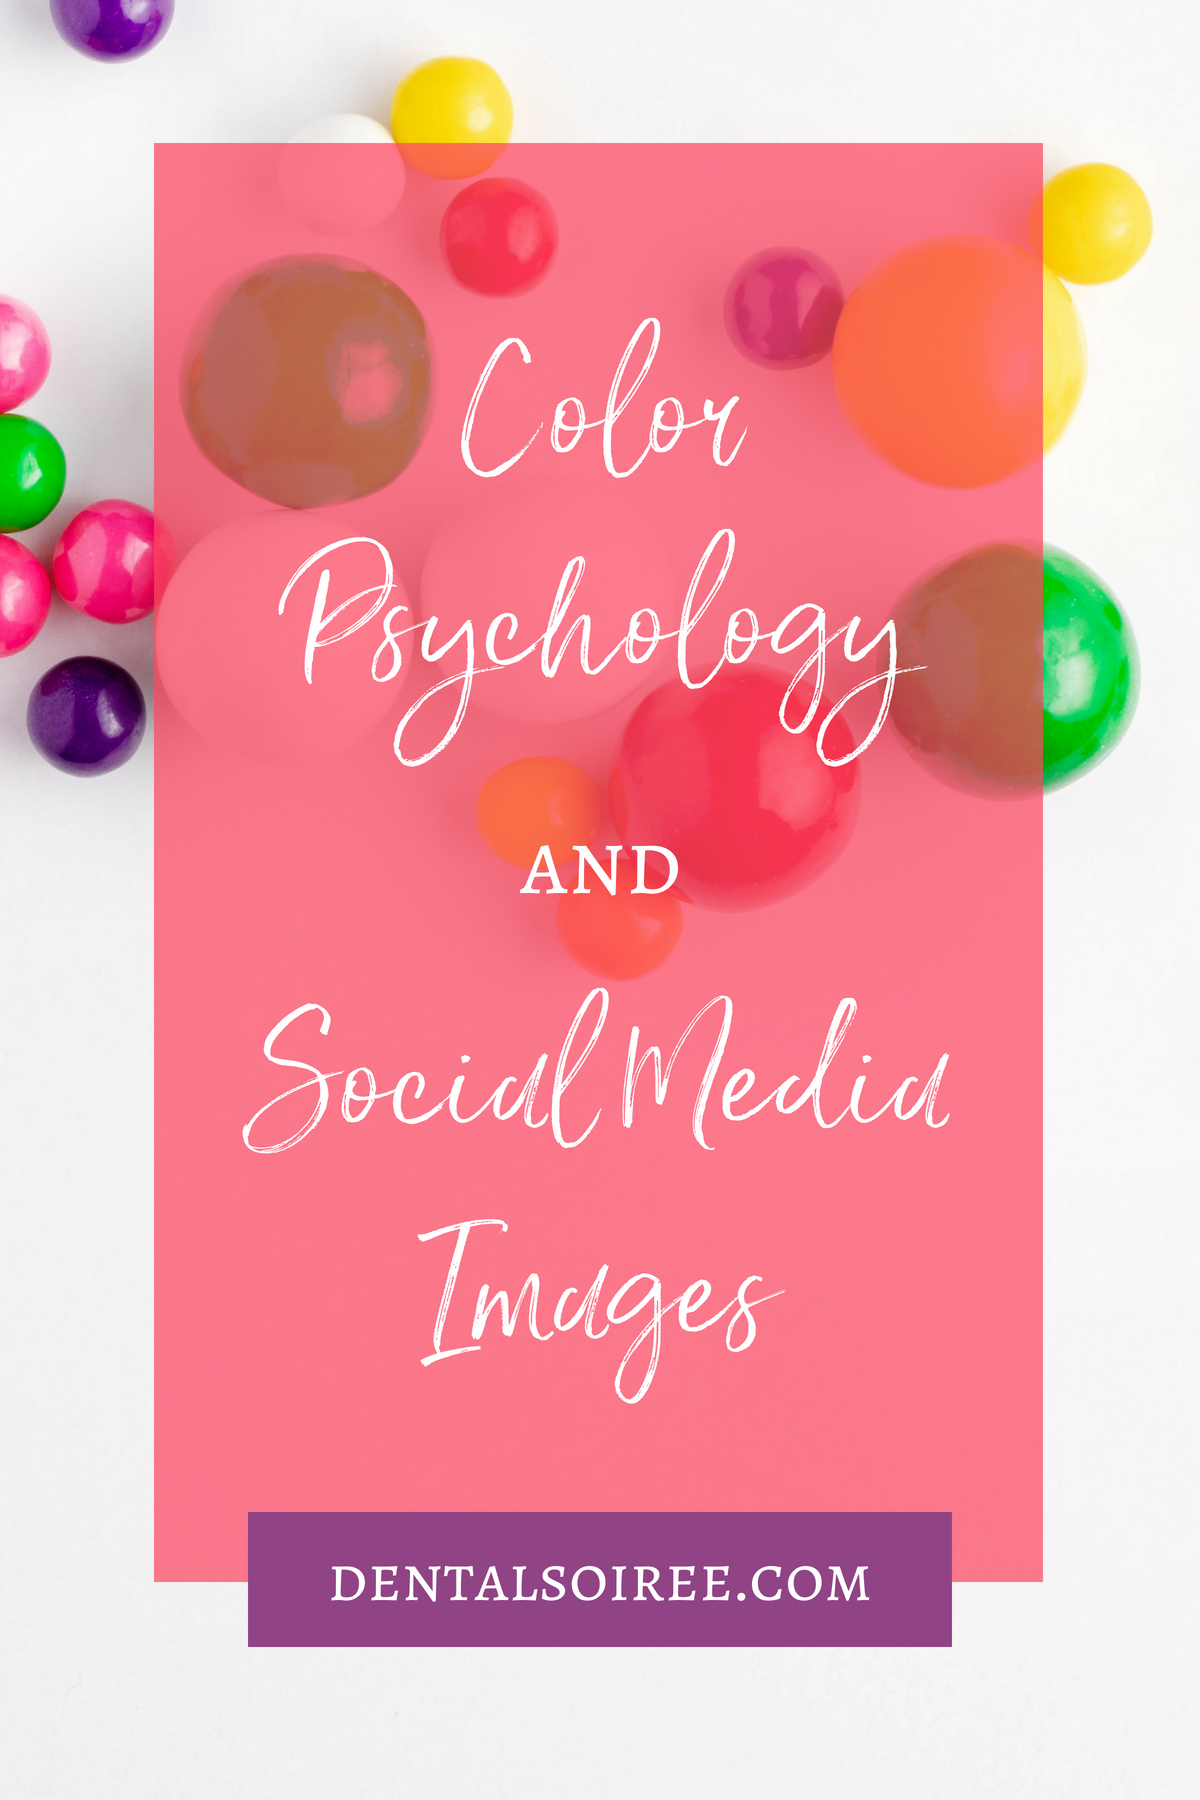 Color Psychology and Social Media Images